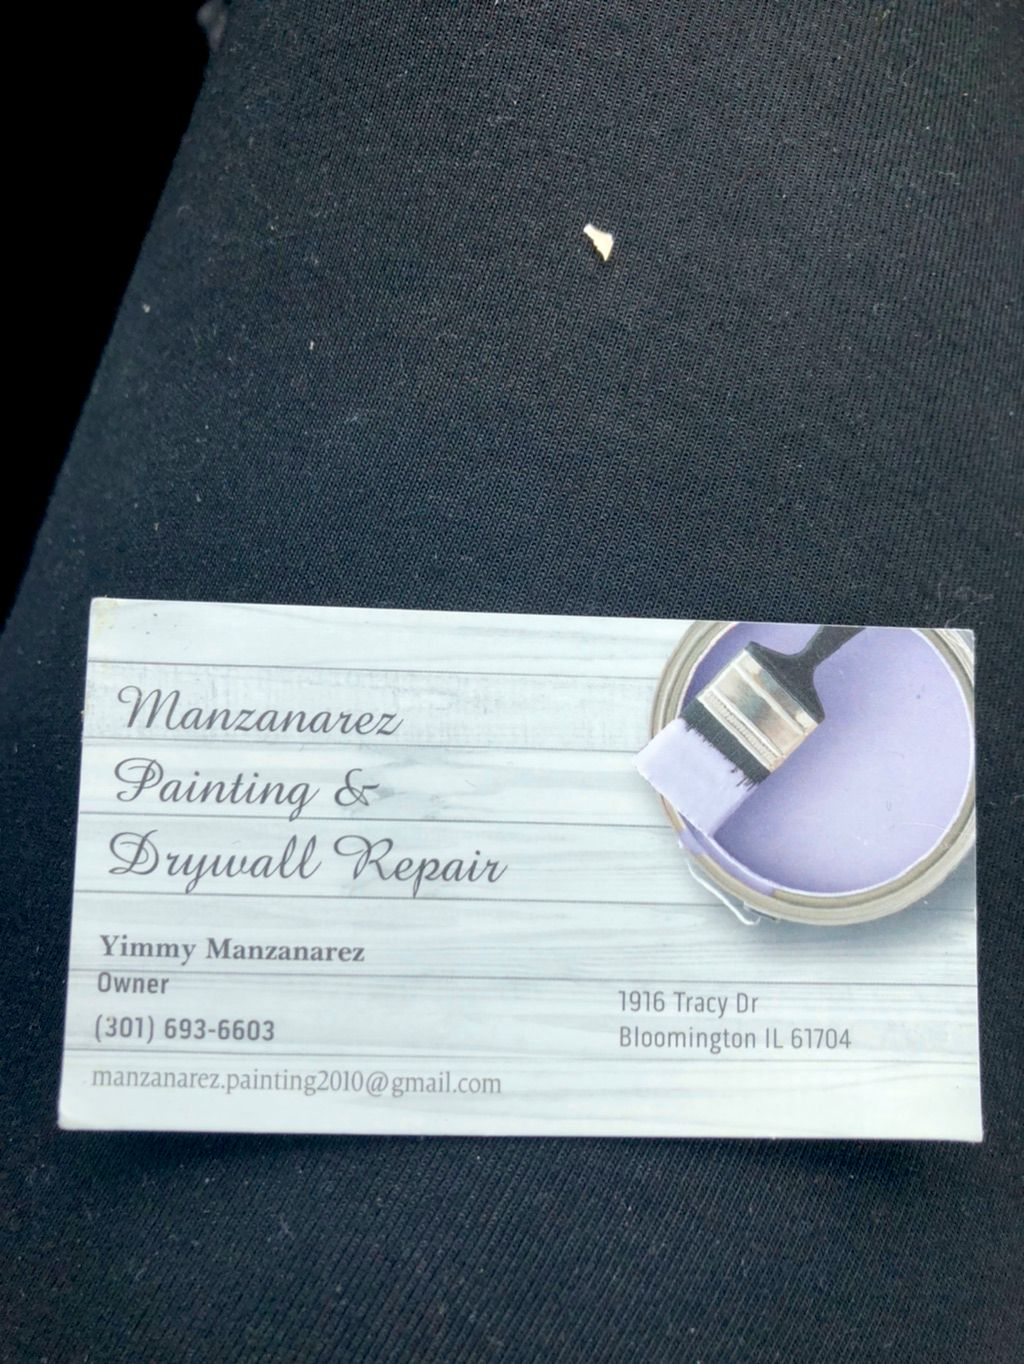 Manzanarez Painting and Drywall Repair